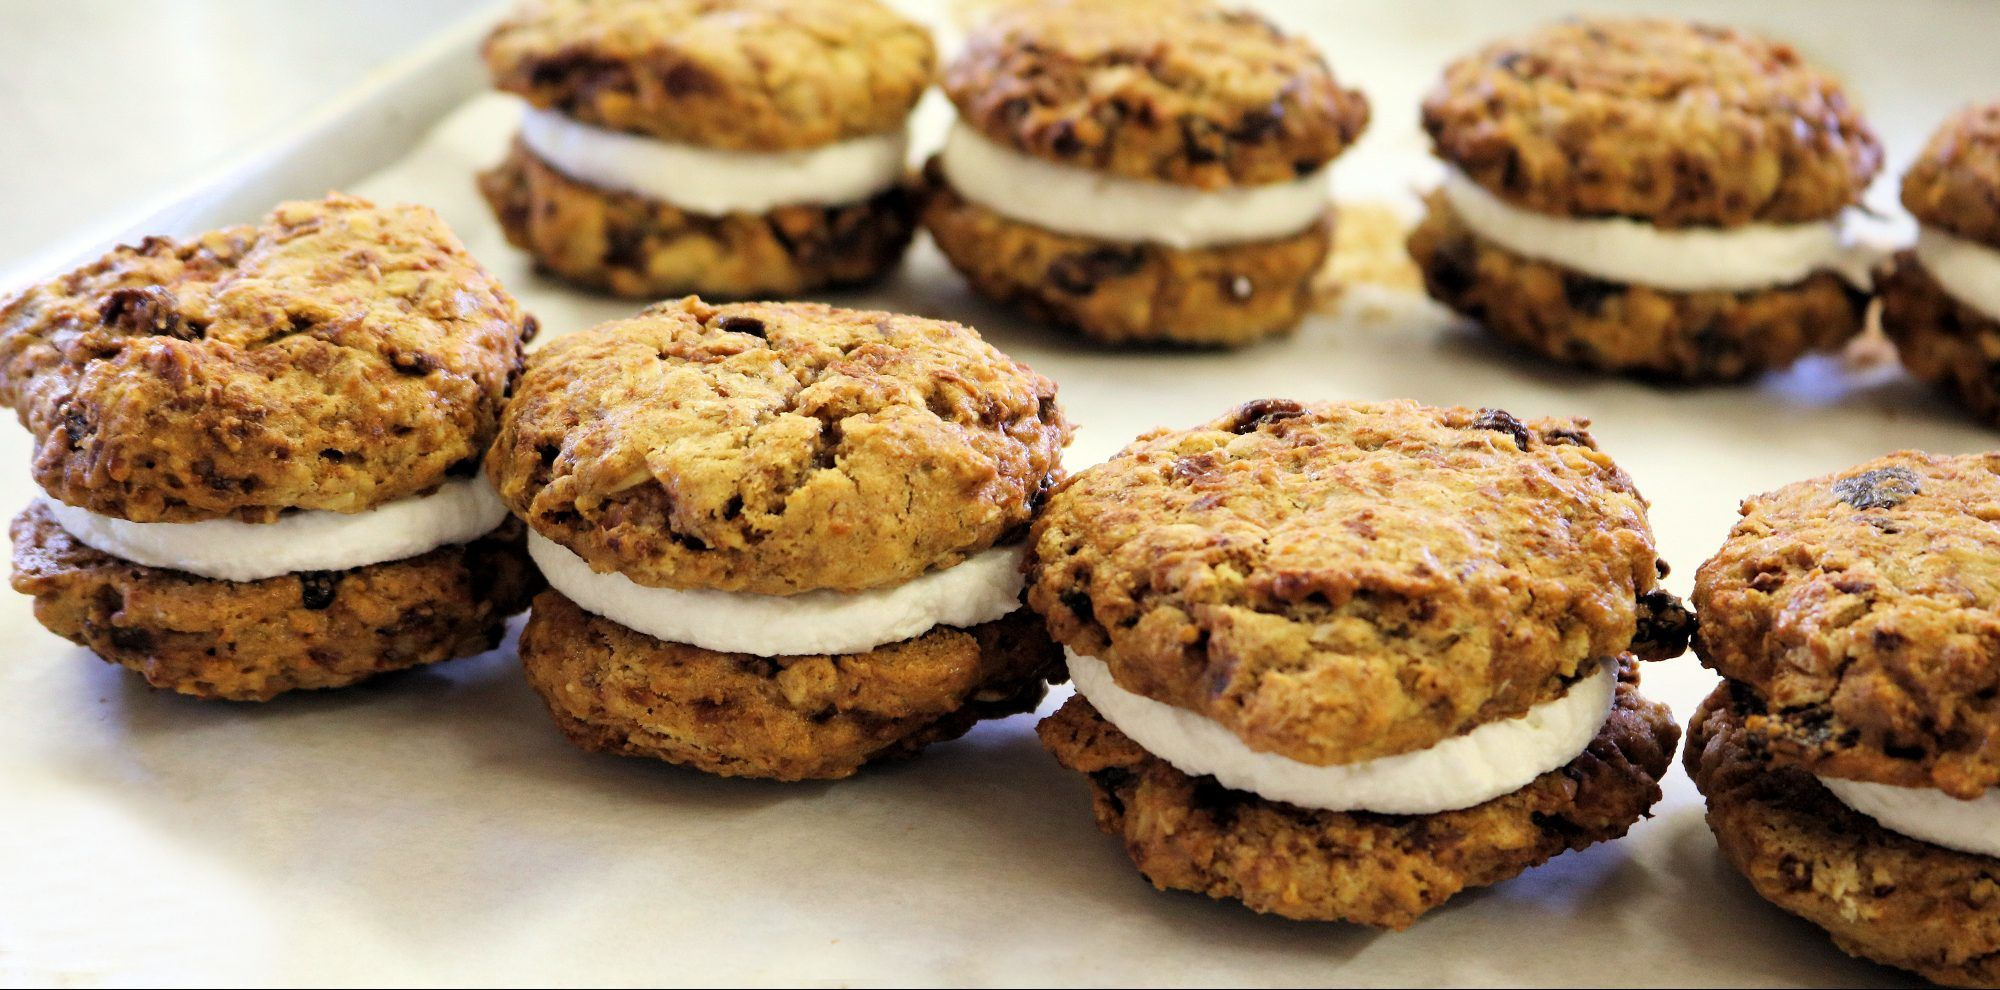 Gluten Free Oatmeal Raisin Cream Pies | Third Coast Bakery